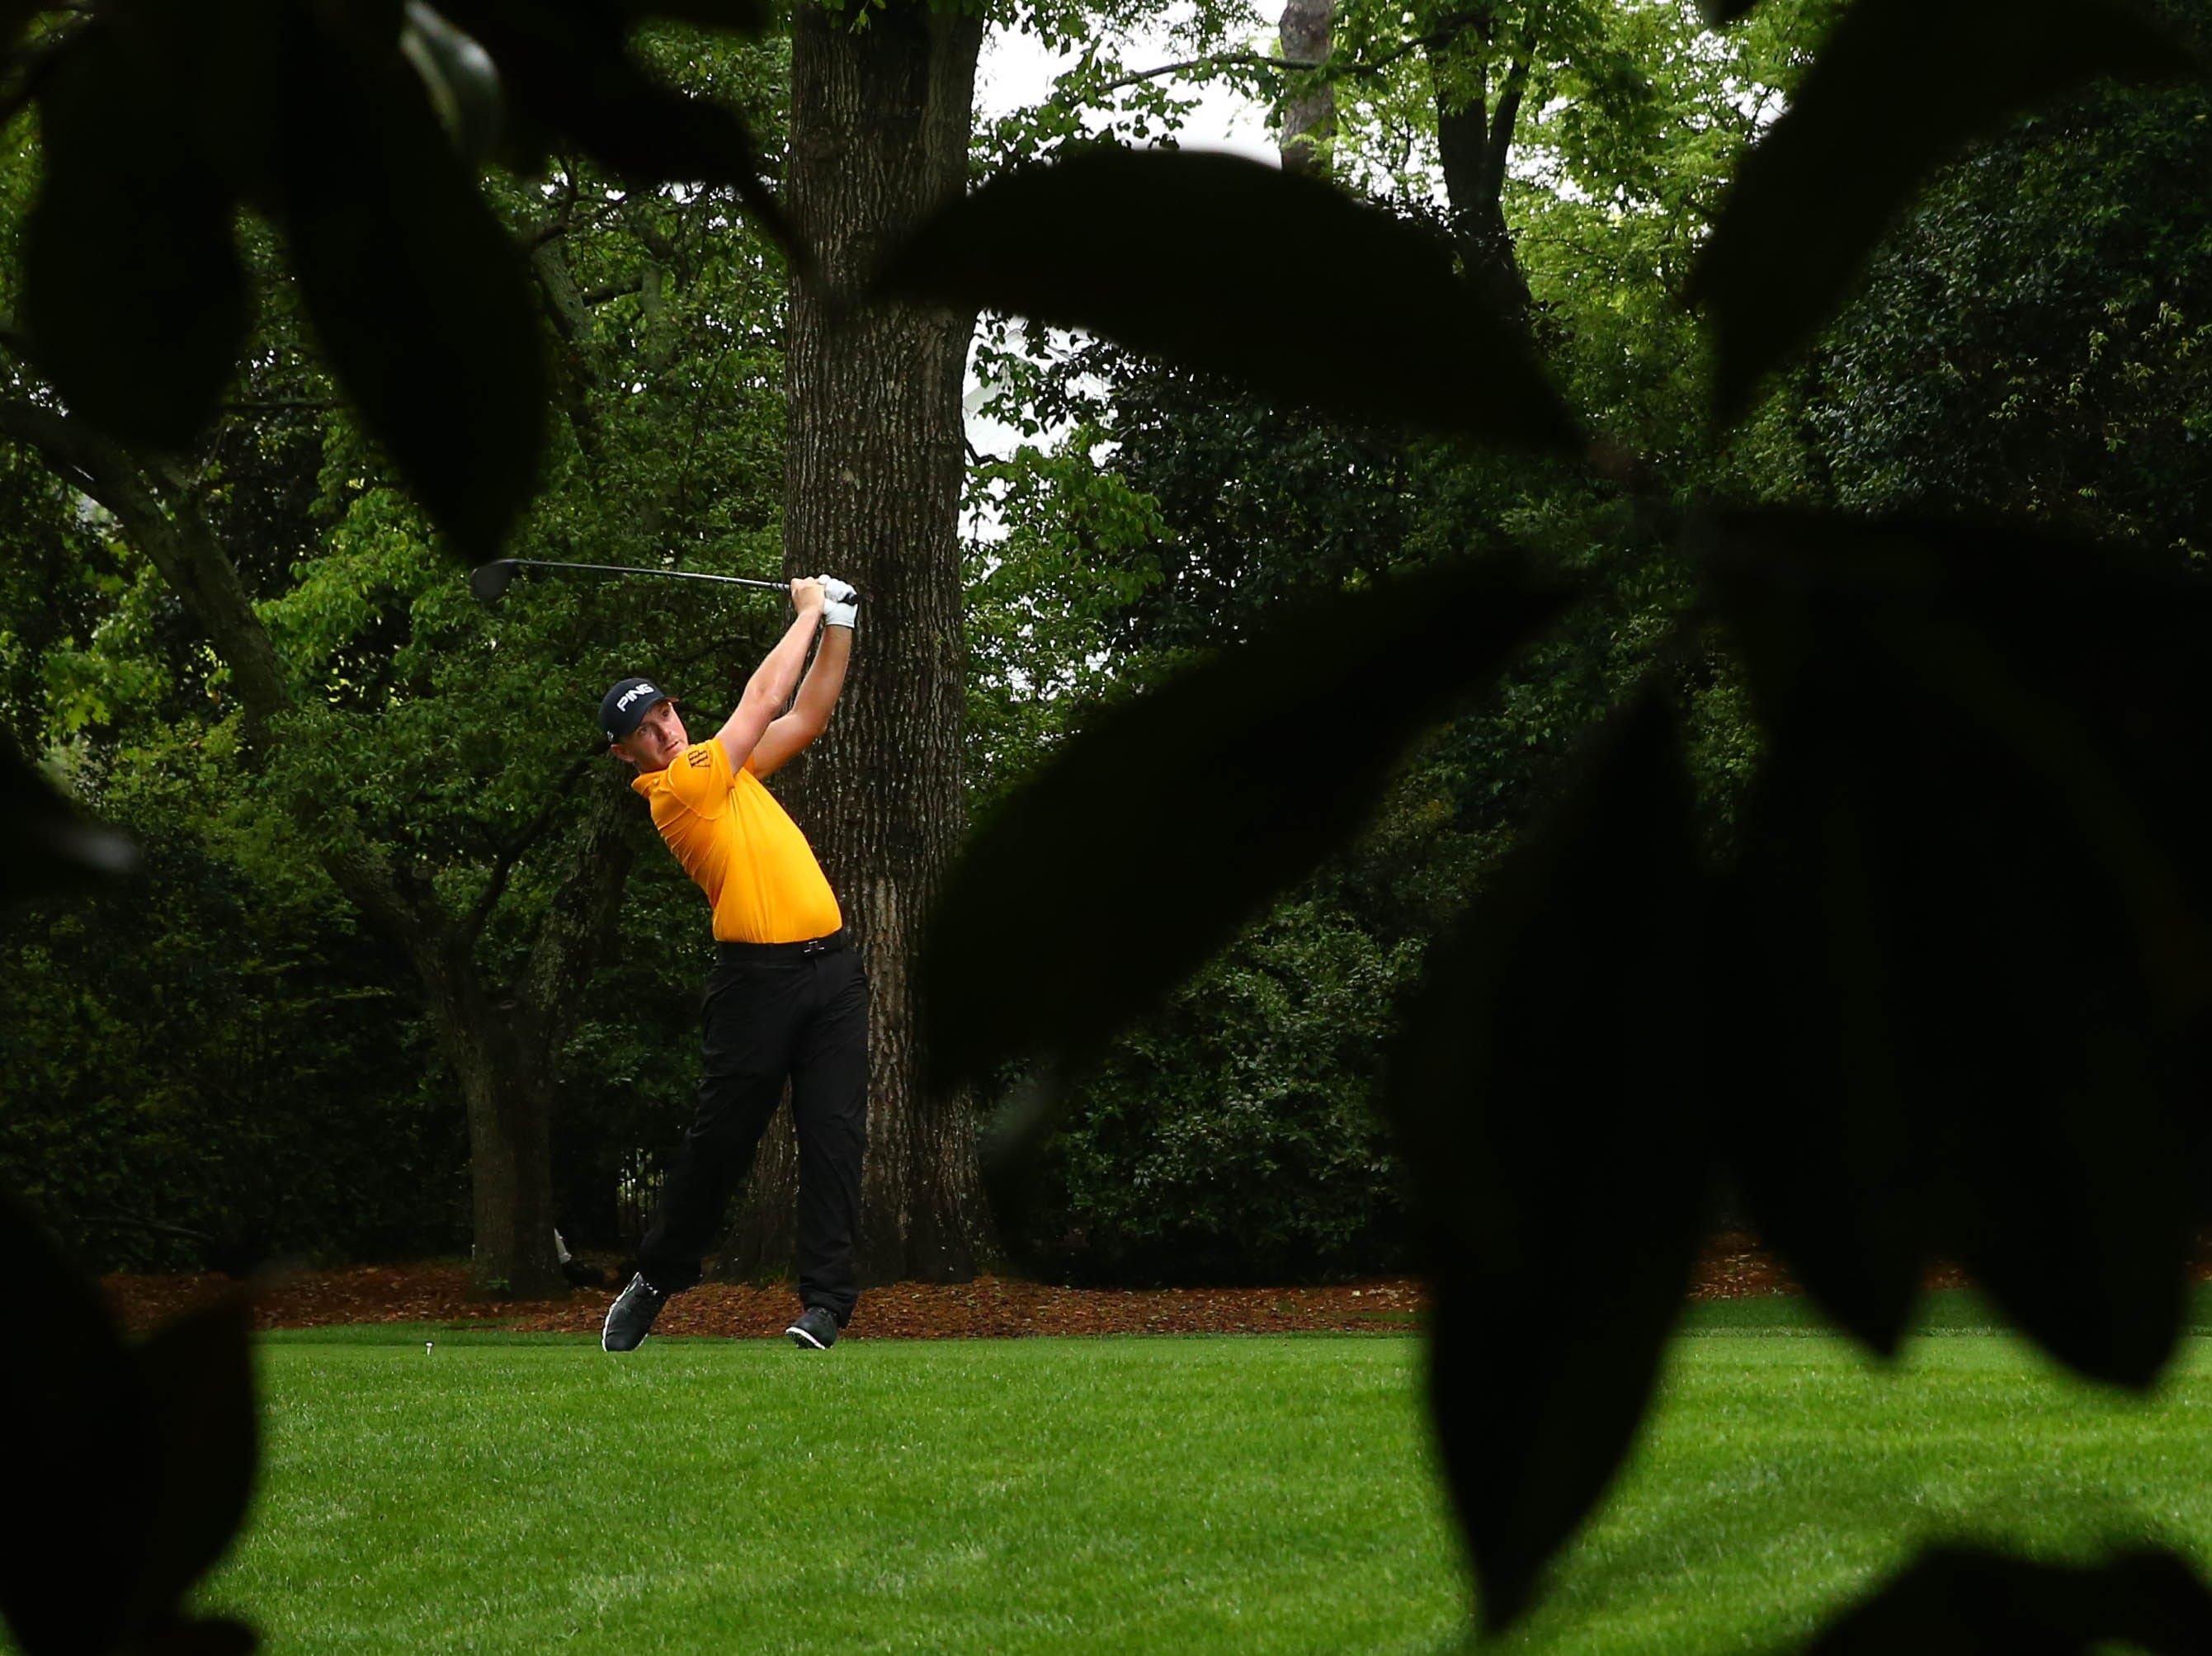 Apr 12, 2019; Augusta, GA, USA; Alvaro Ortiz hits his tee shot on the 2nd hole during the second round of The Masters golf tournament at Augusta National Golf Club. Mandatory Credit: Rob Schumacher-USA TODAY Sports